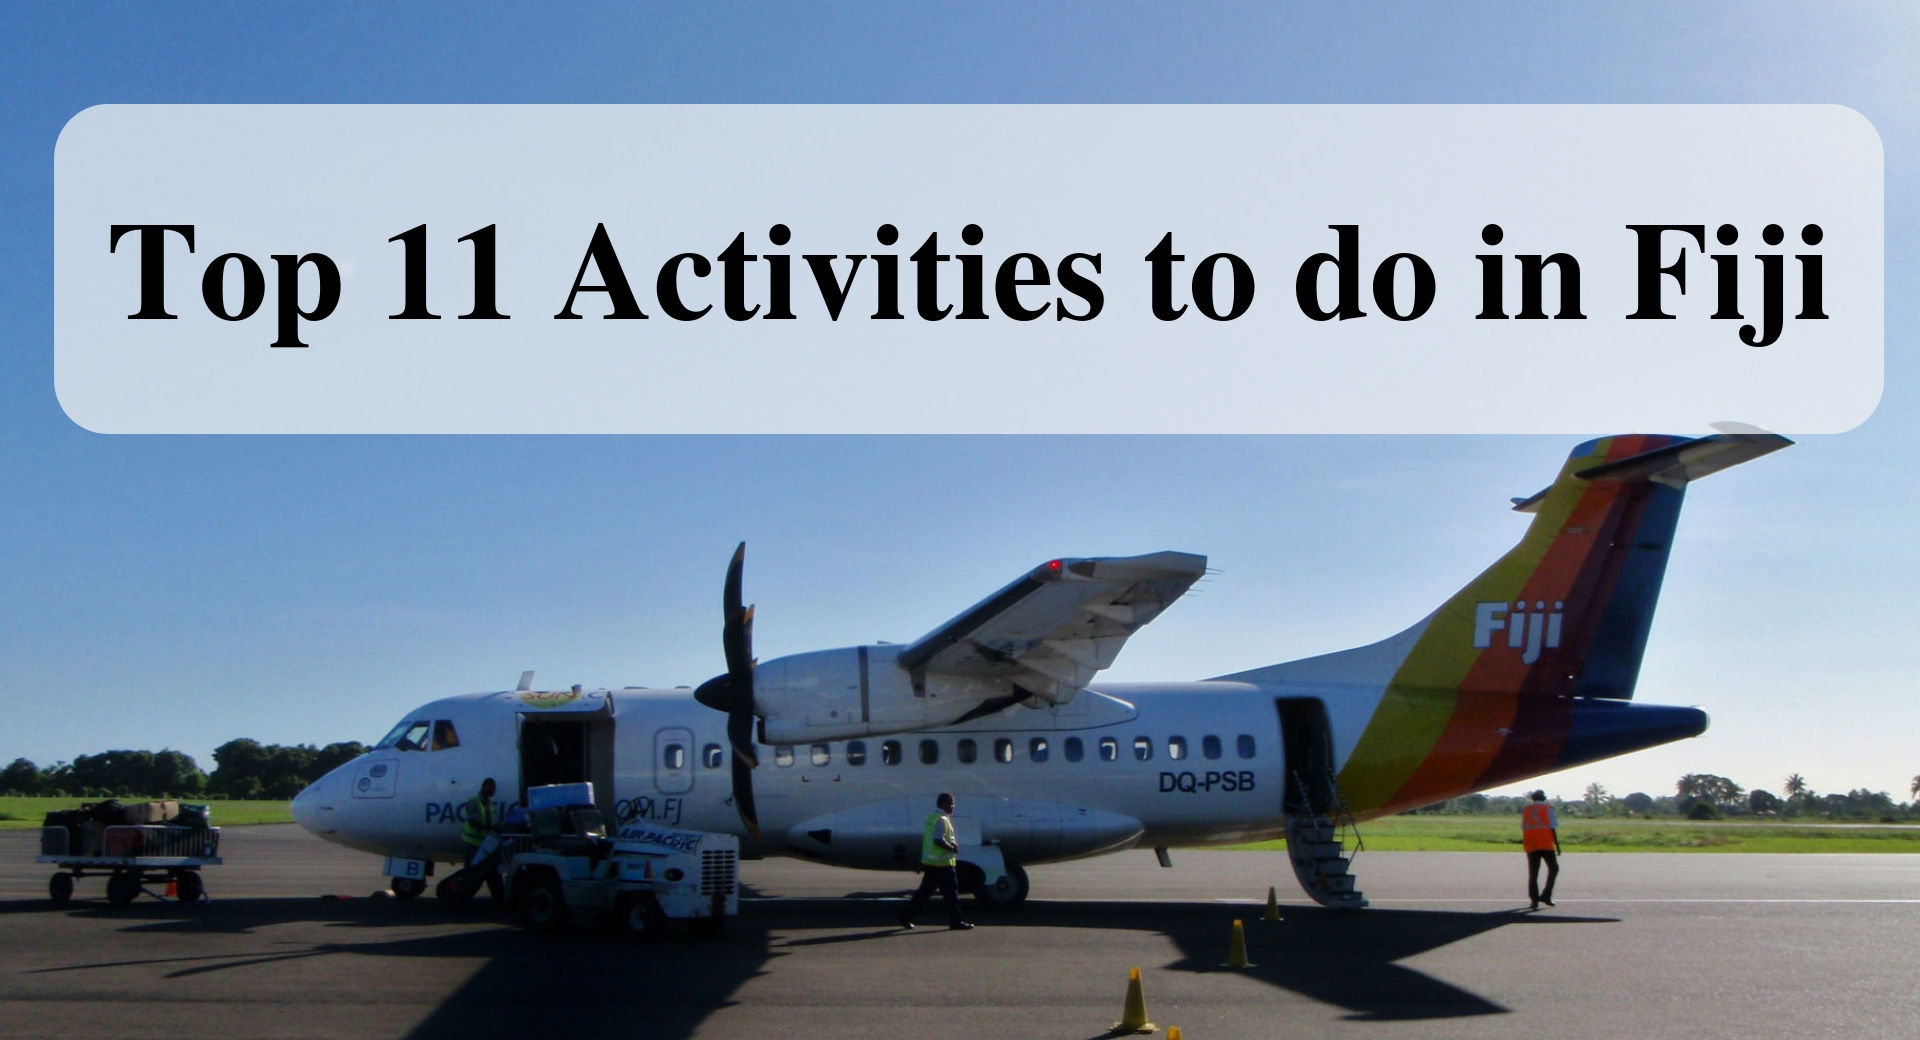 Top 11 Activities to do in Fiji main